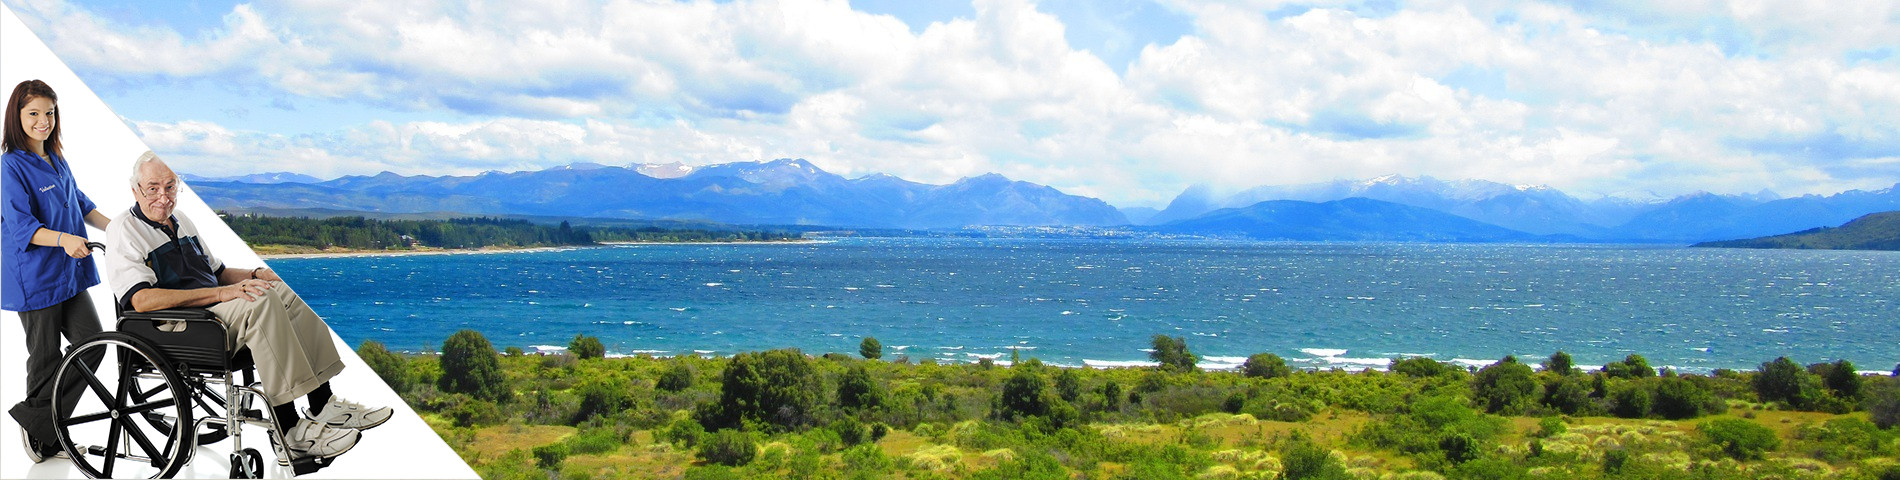 Bariloche - Spanish & Volunteering